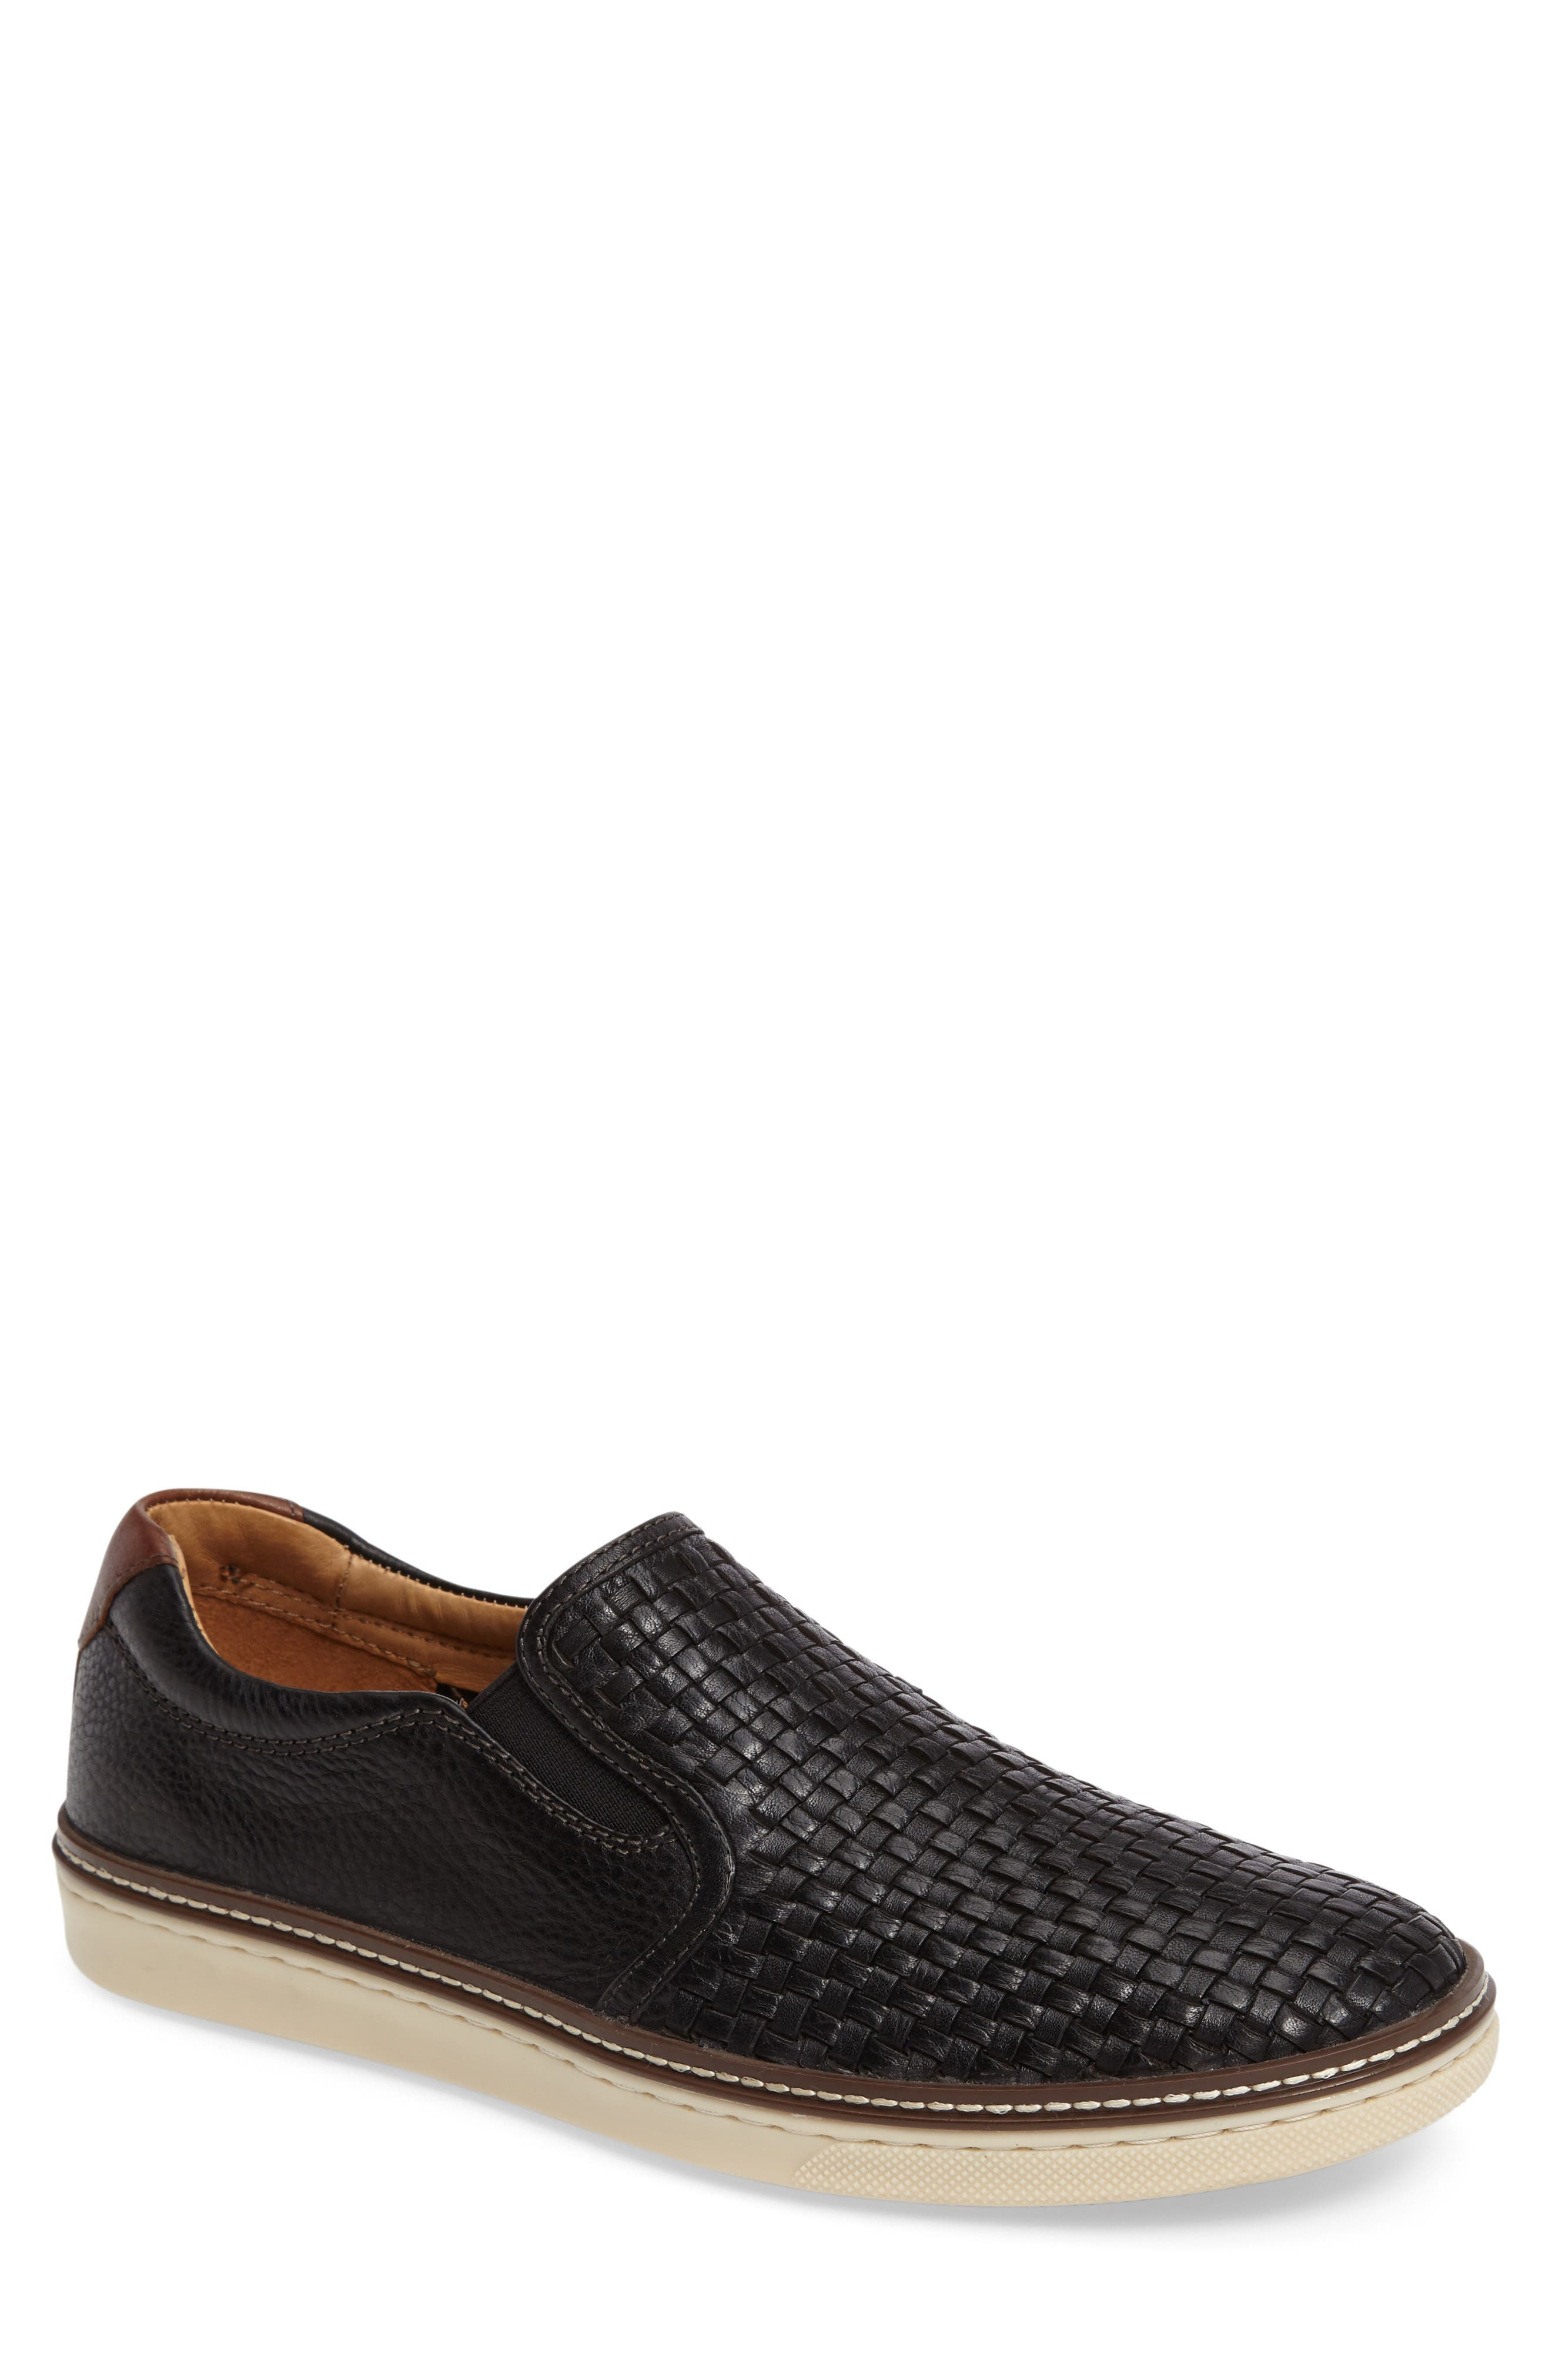 JOHNSTON & MURPHY McGuffey Woven Slip-On Sneaker, Main, color, BLACK LEATHER